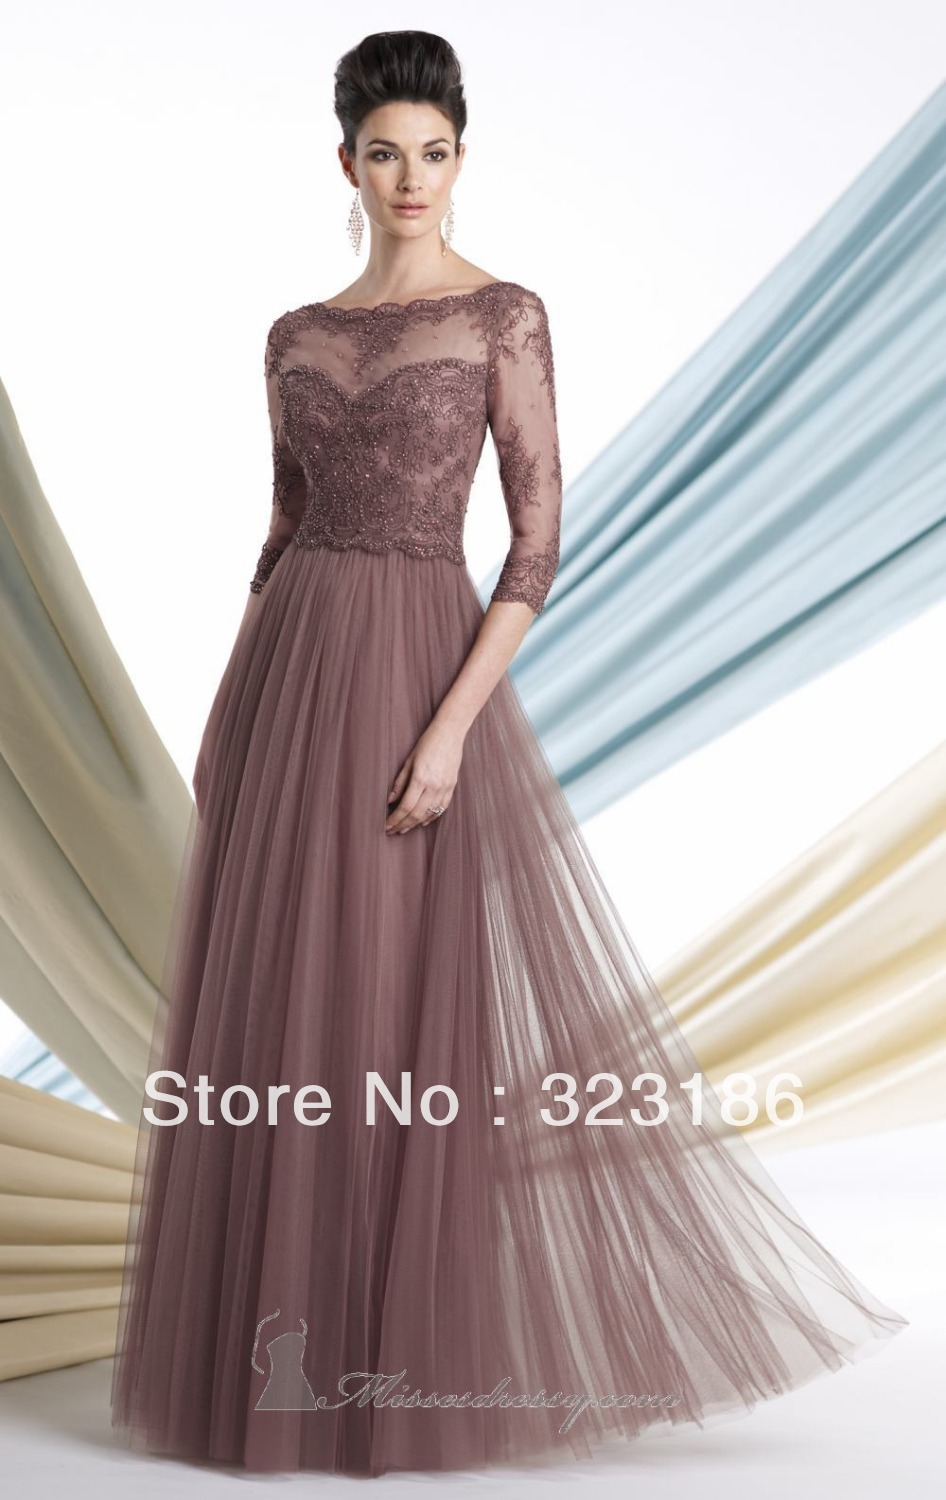 Dresses For Evening Wedding Guest - Ocodea.com